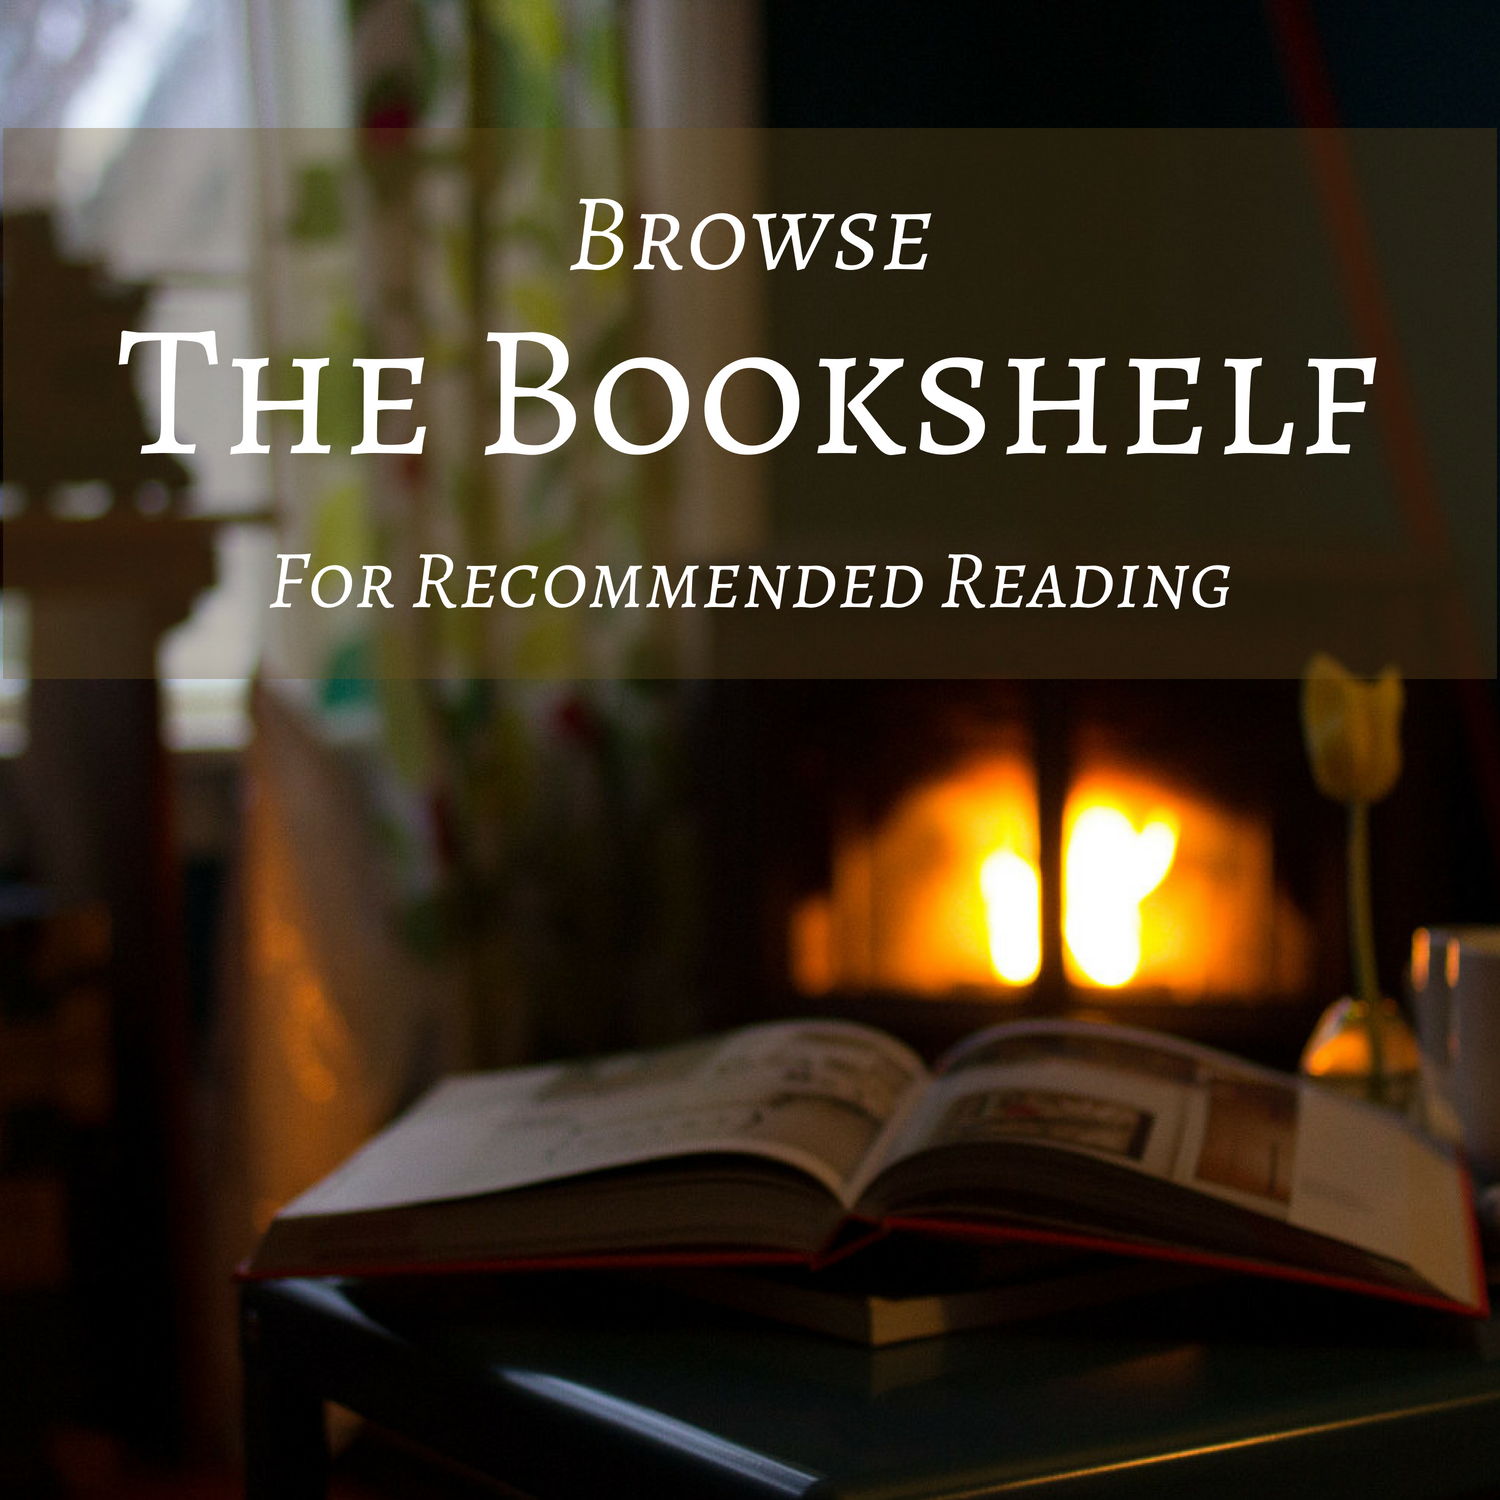 Browse the bookshelf for recommended reading.png